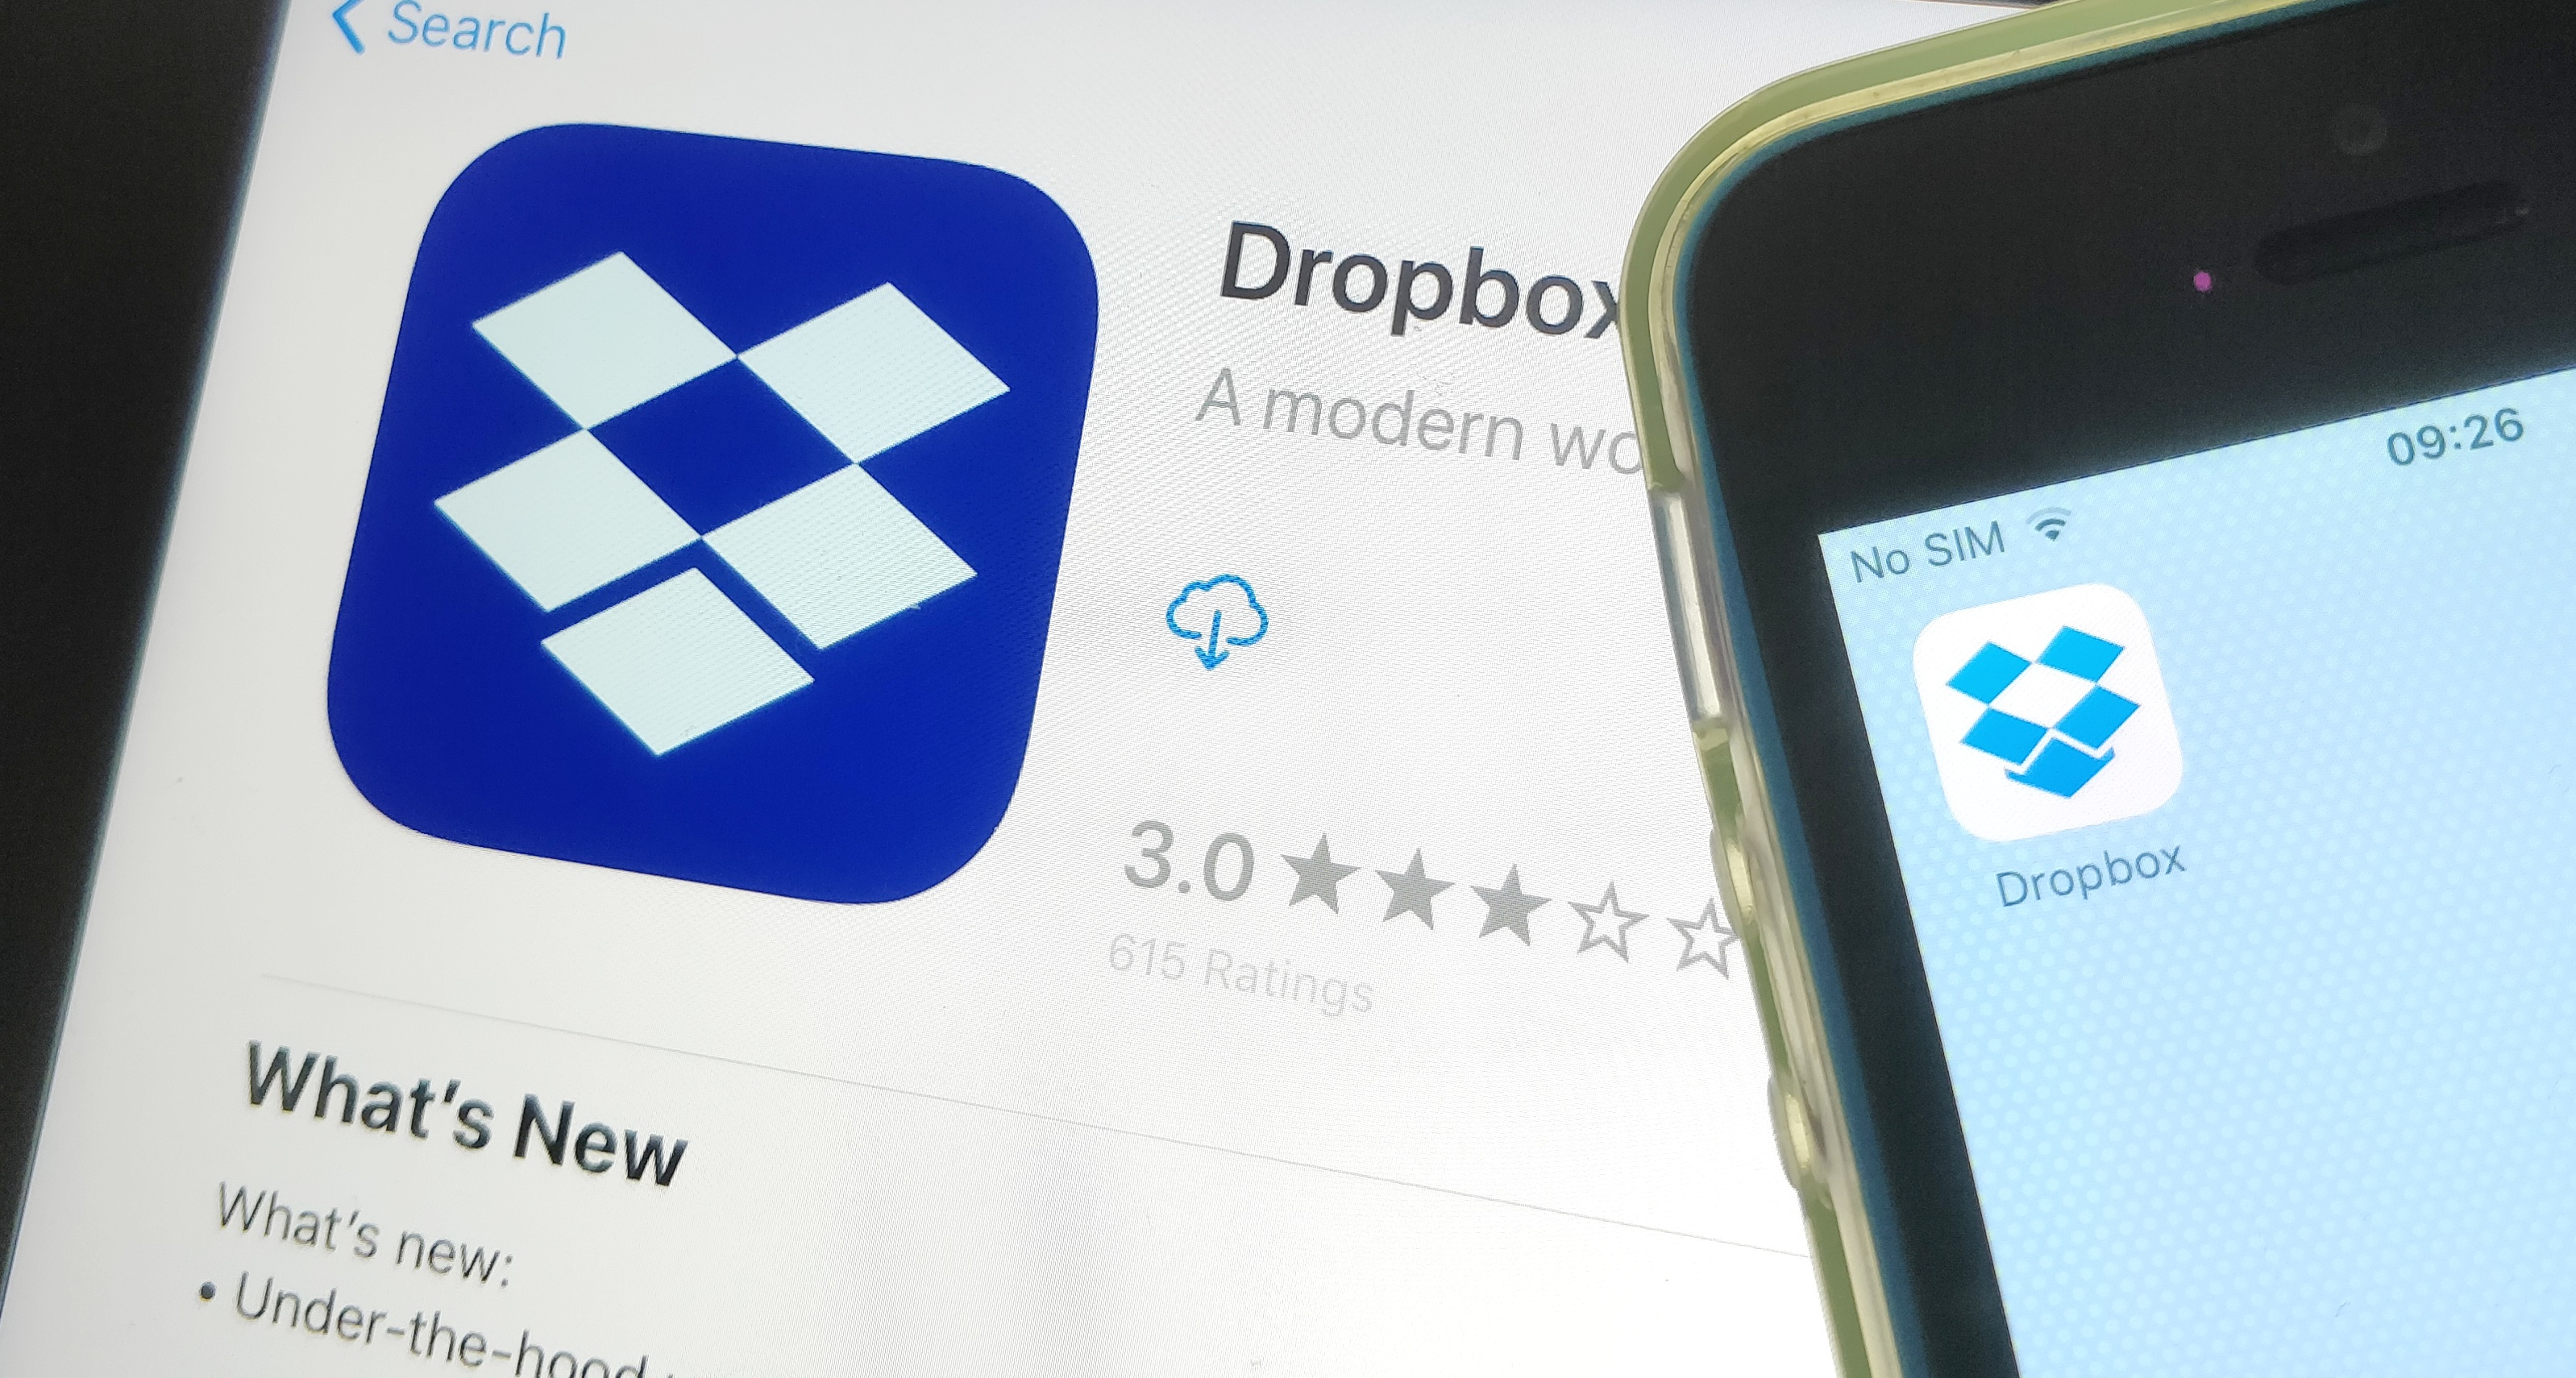 Where The Dropbox IPO Ranks Among Recent Tech Offerings